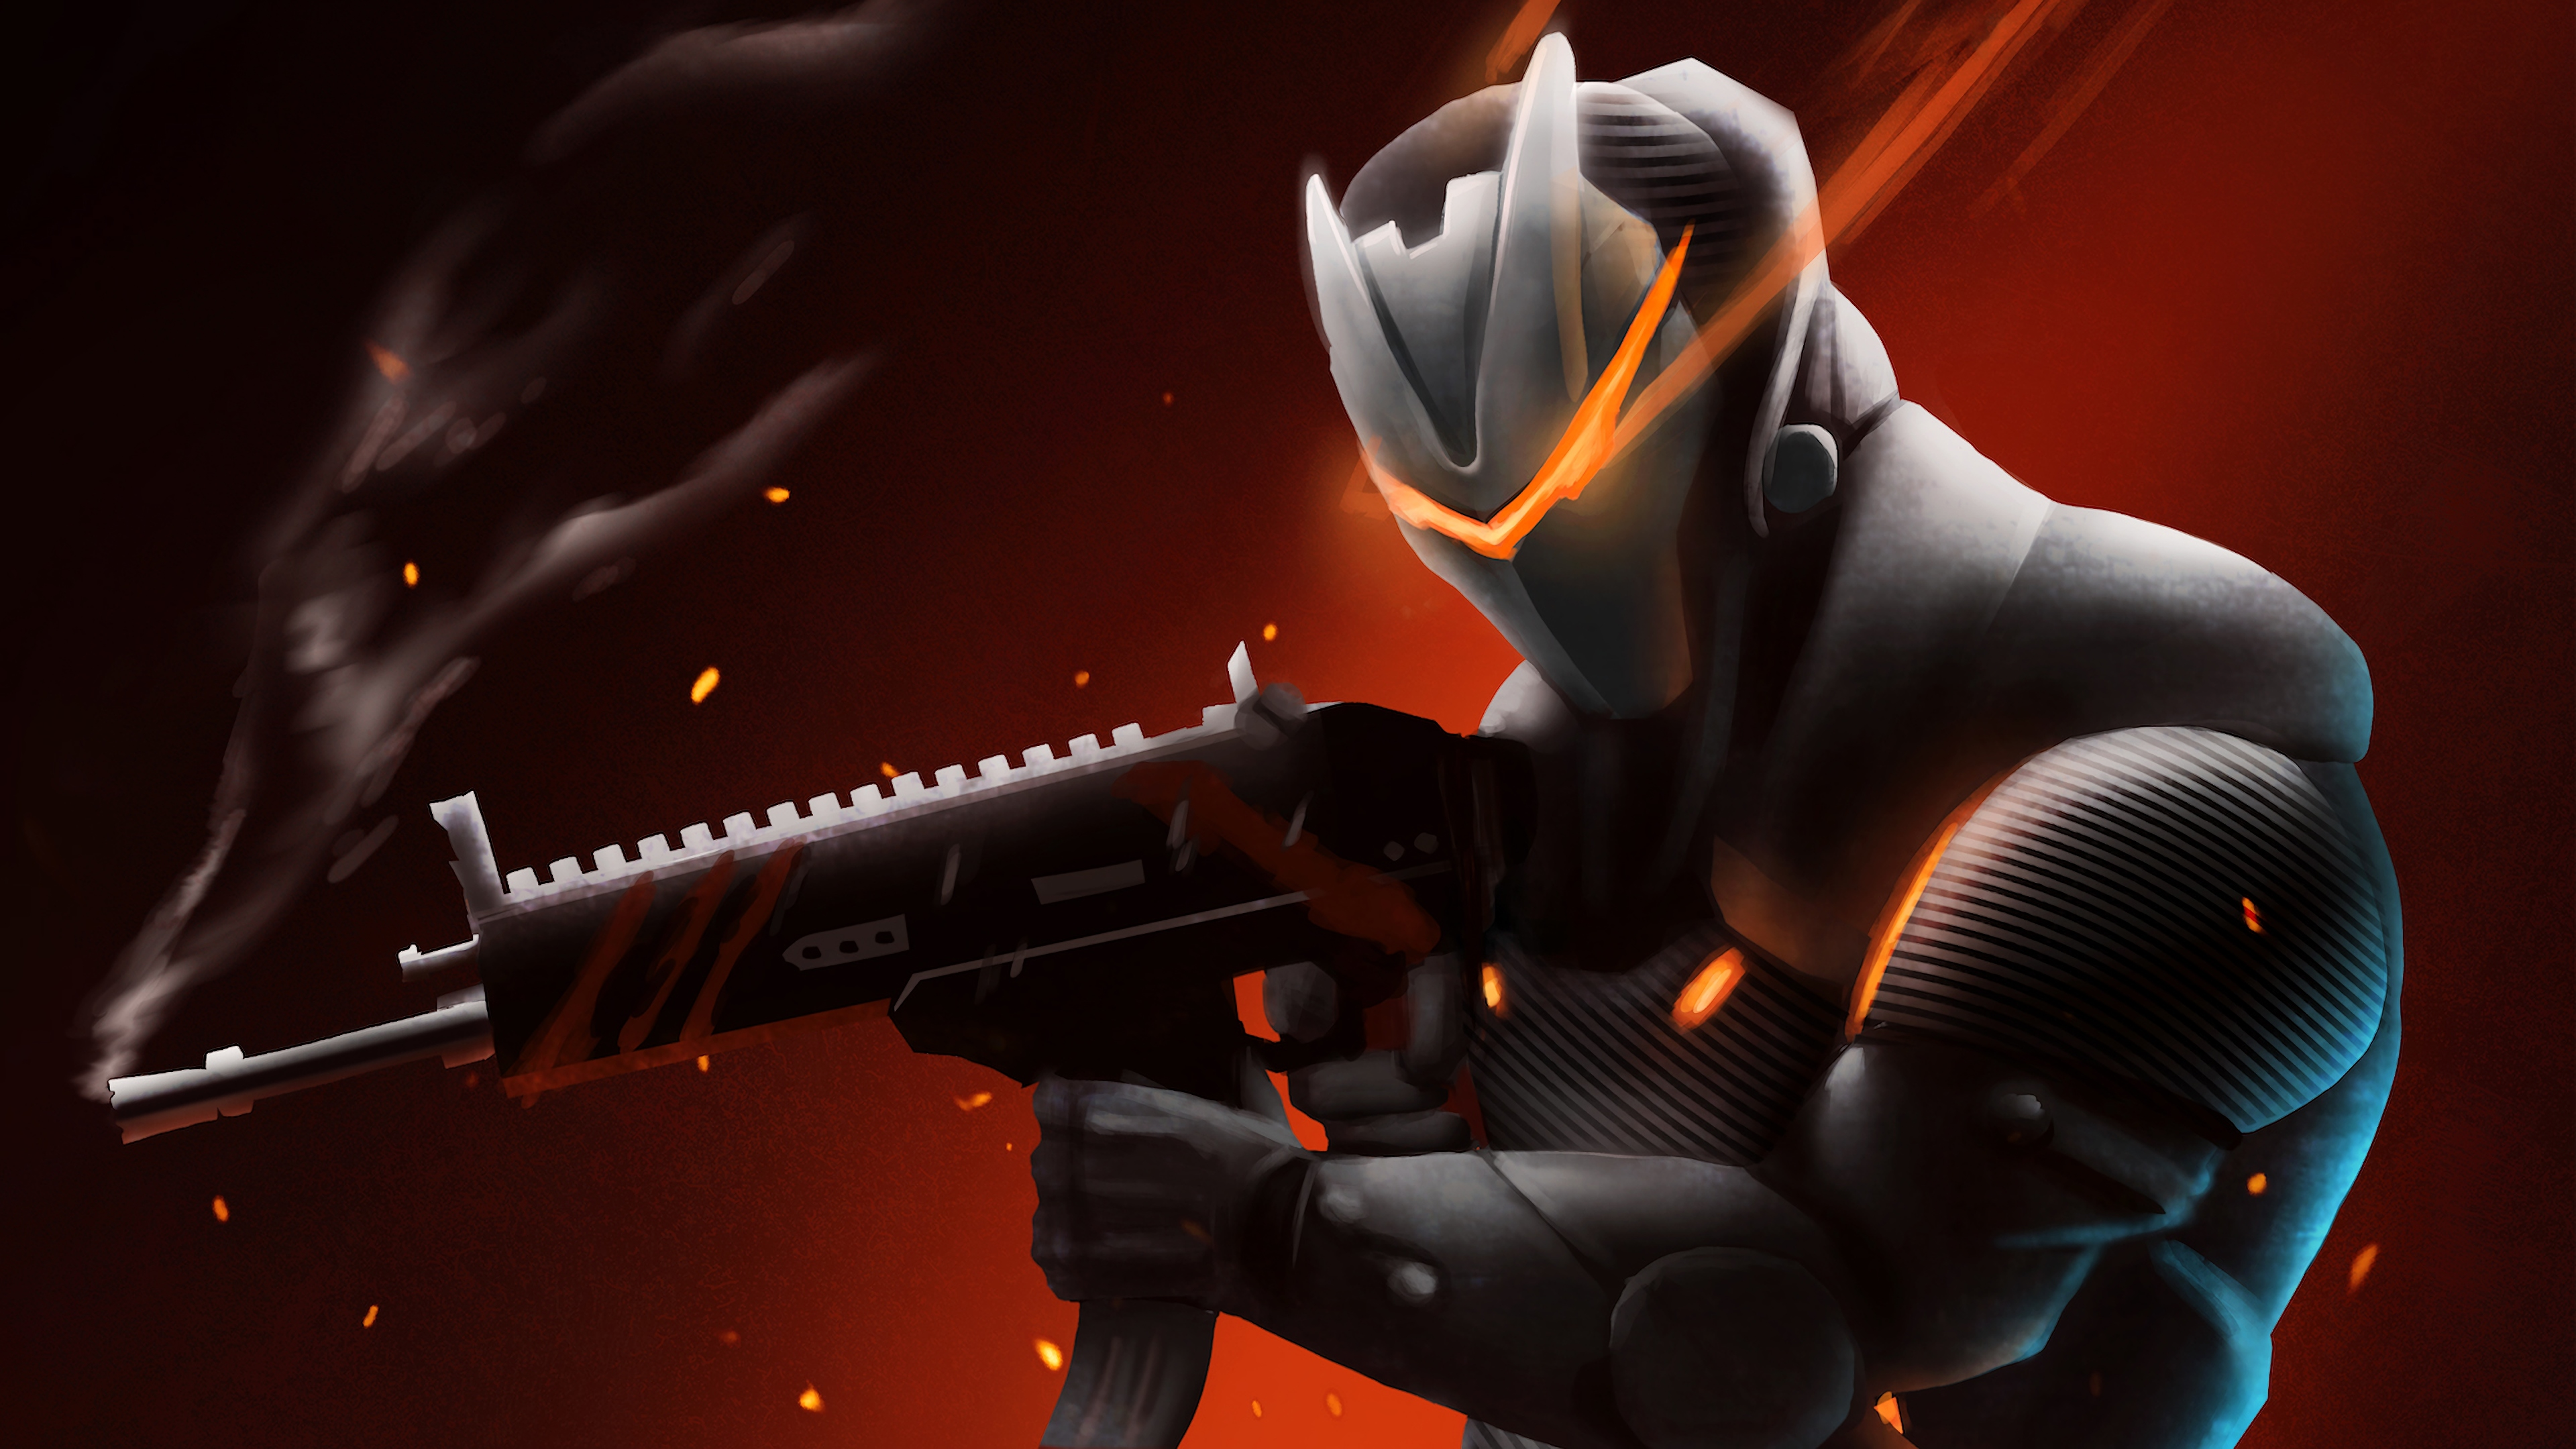 fortnite wallpaper 1440x900: Omega With Rifle Fortnite Battle Royale, HD Games, 4k